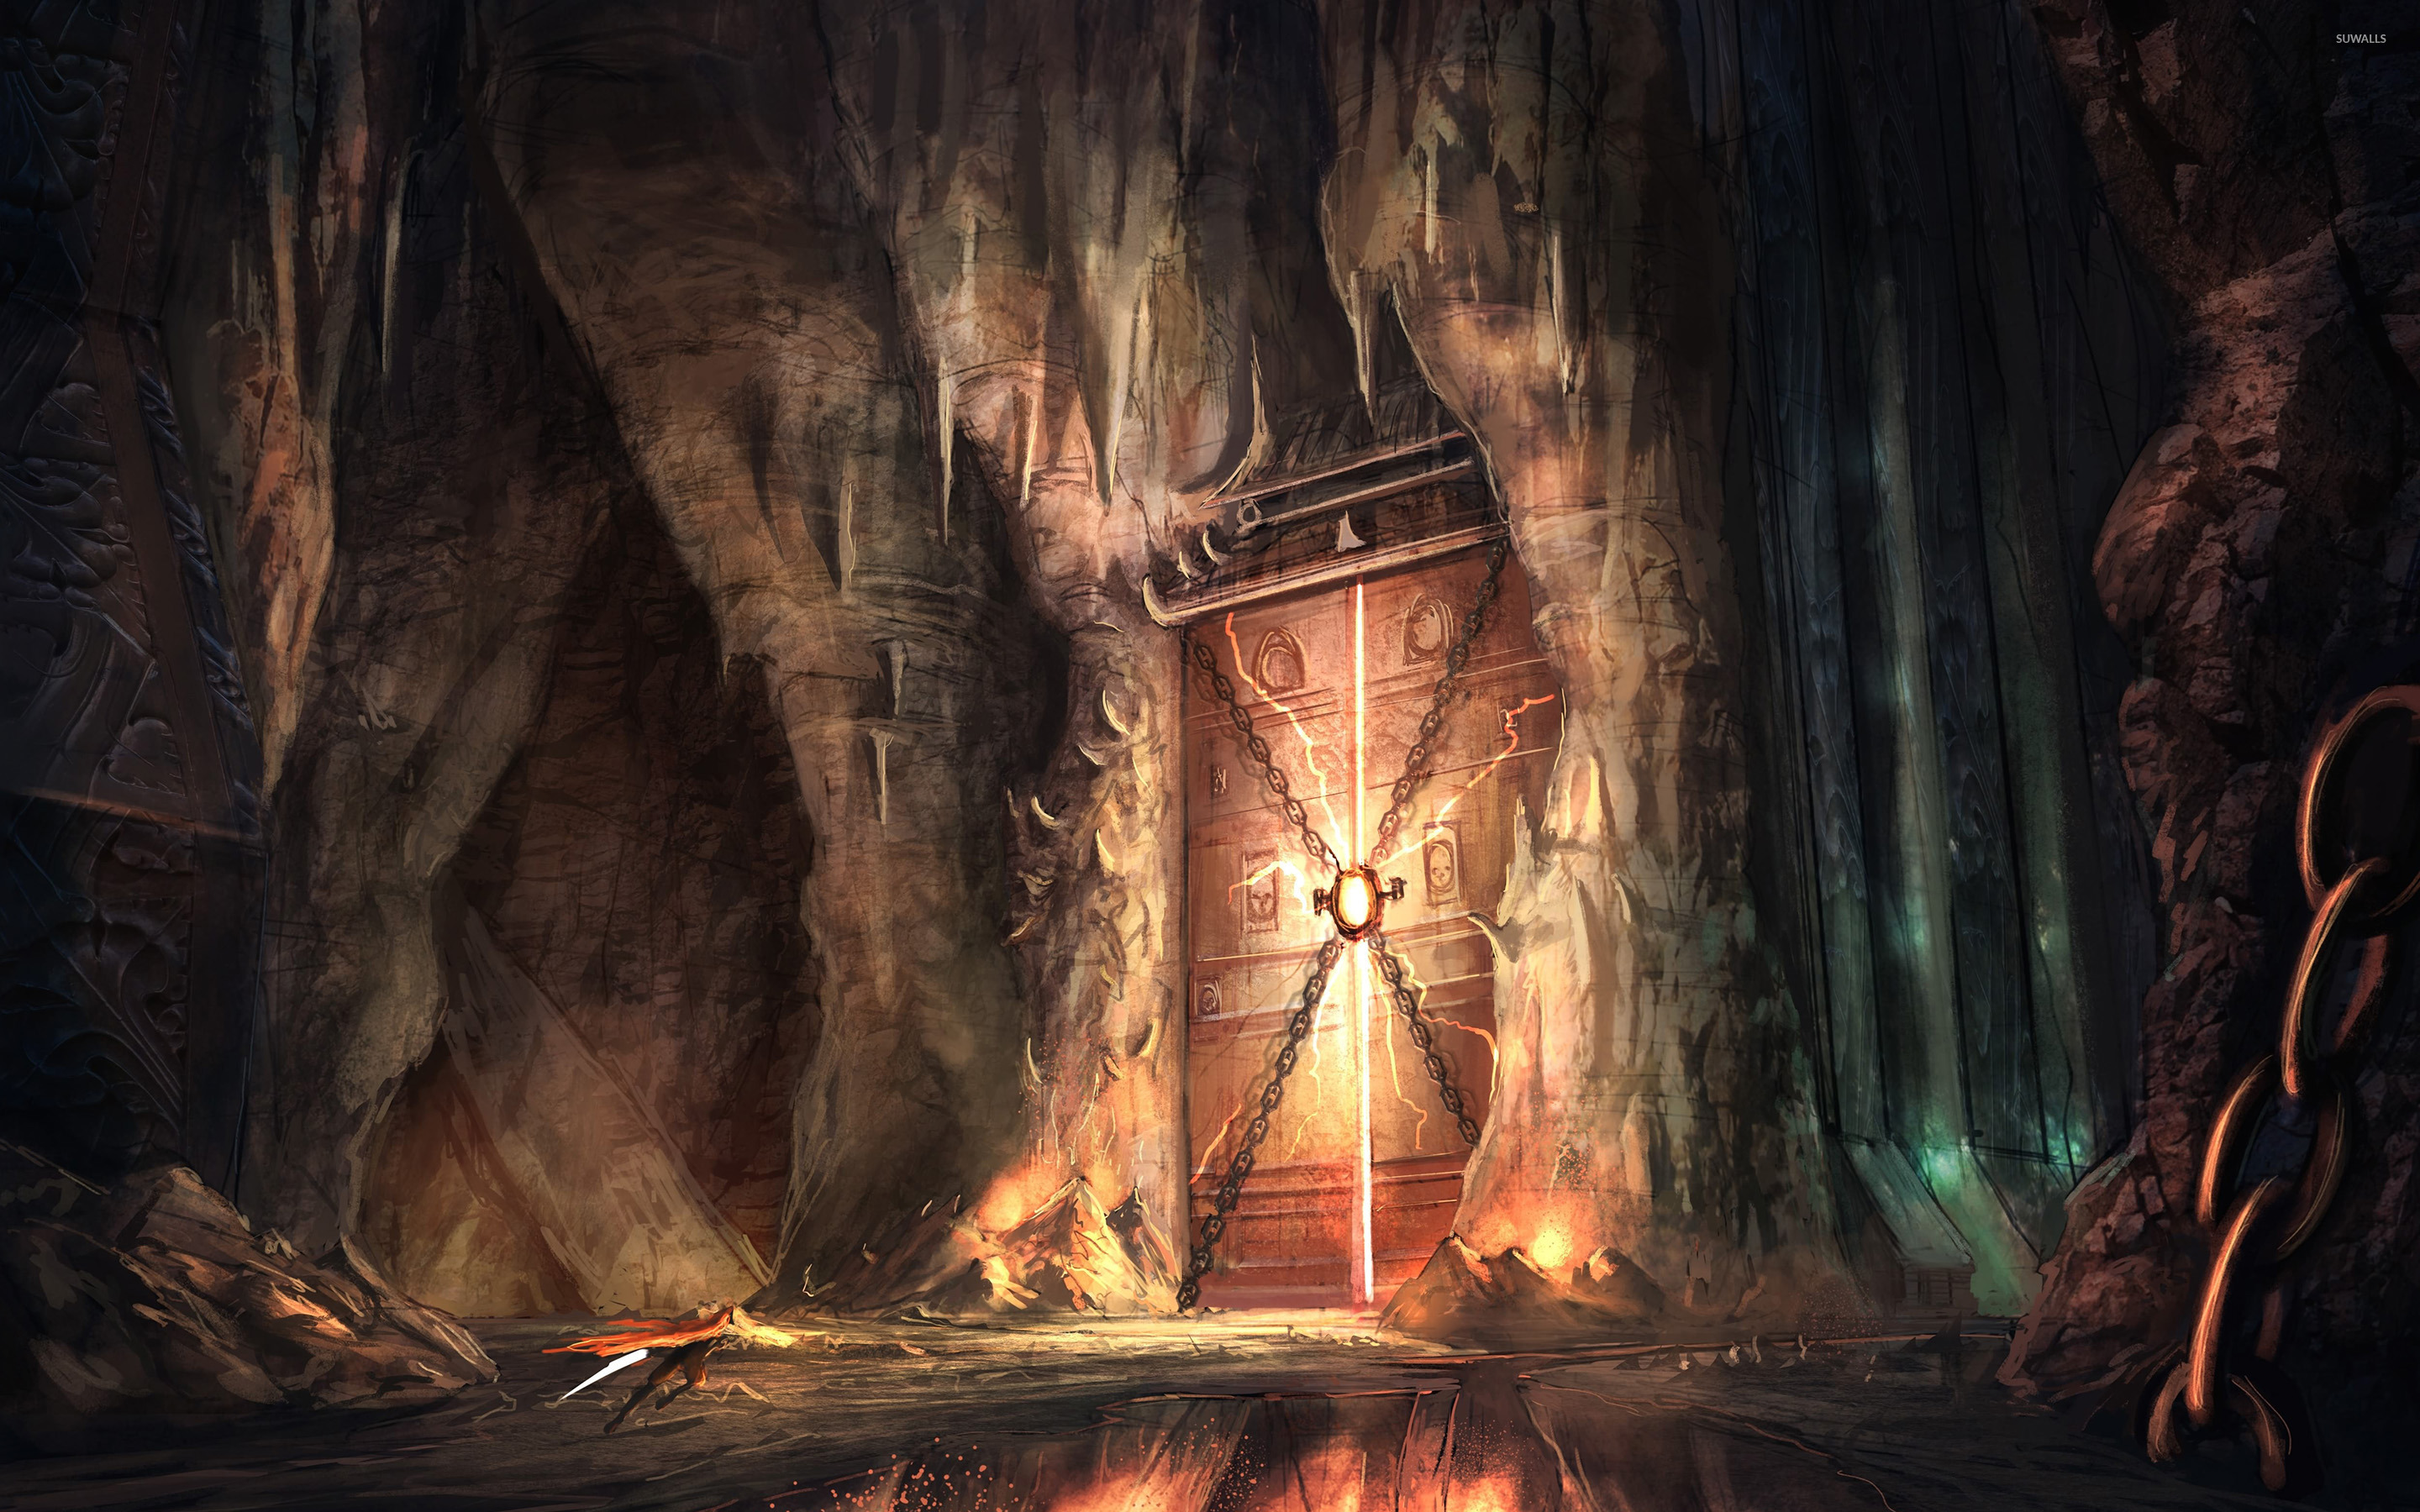 Gates of hell wallpaper   Fantasy wallpapers   43722 2880x1800